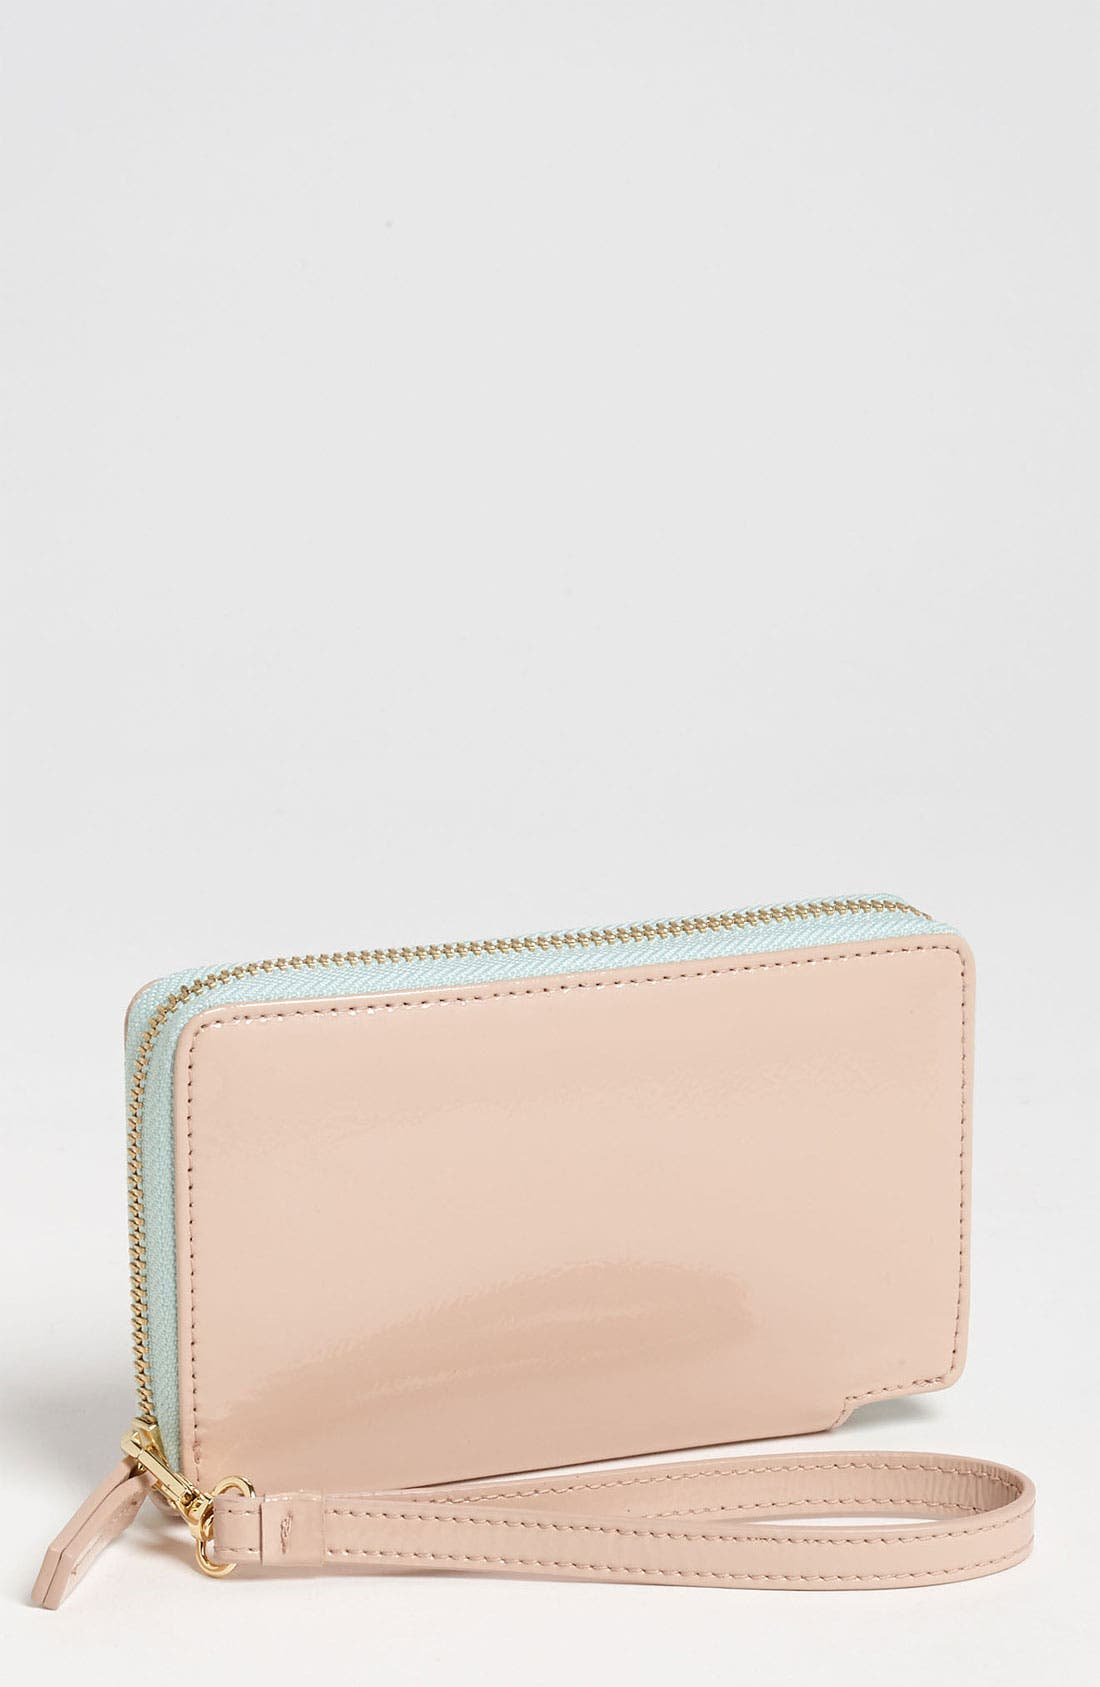 Alternate Image 1 Selected - Halogen 'Cassie - Small' Wristlet